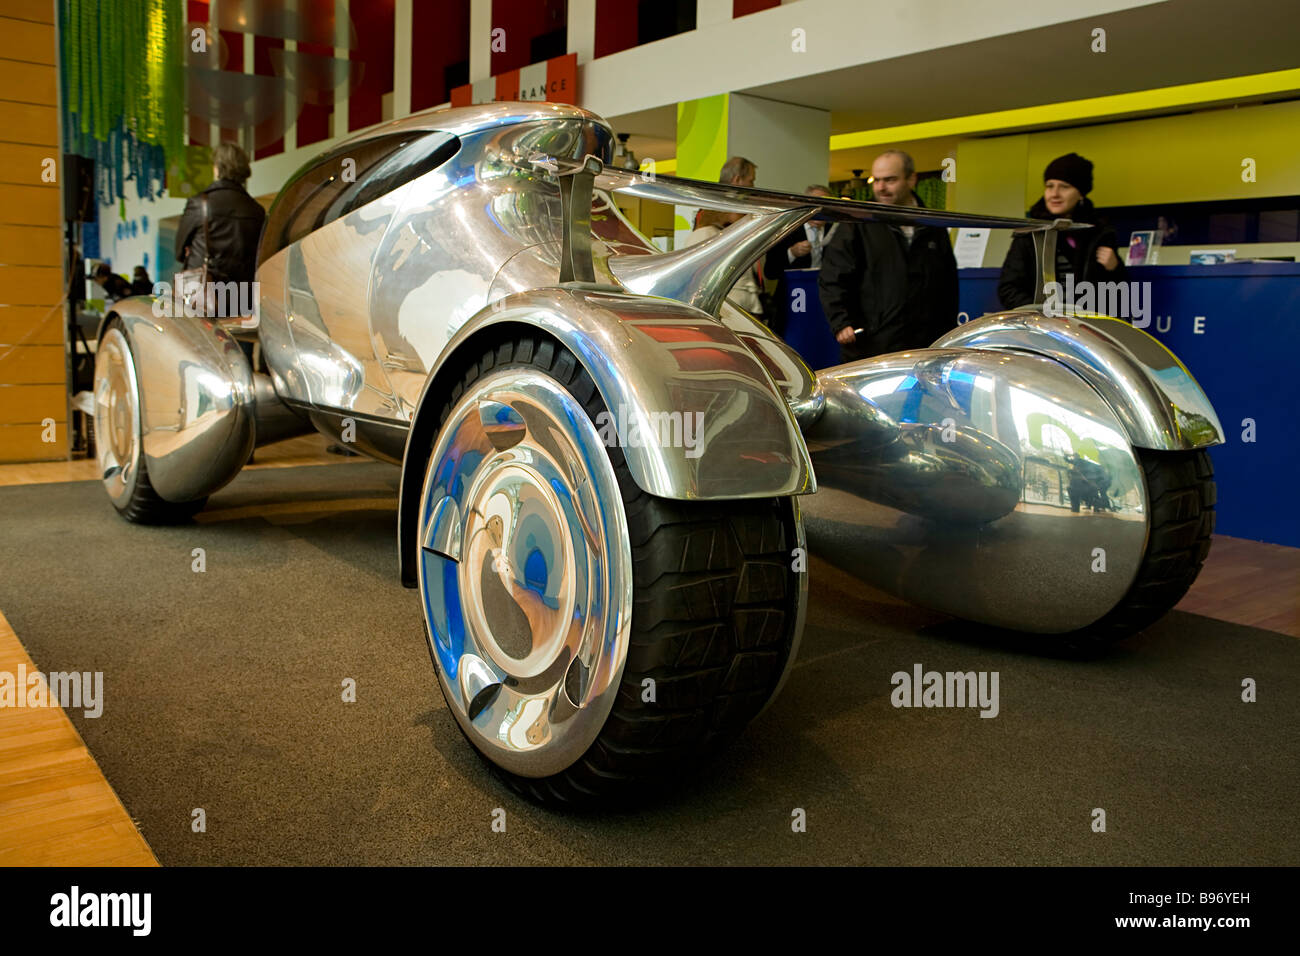 Polished aluminum Peugeot prototype concept car in Berlin, Germany. - Stock Image